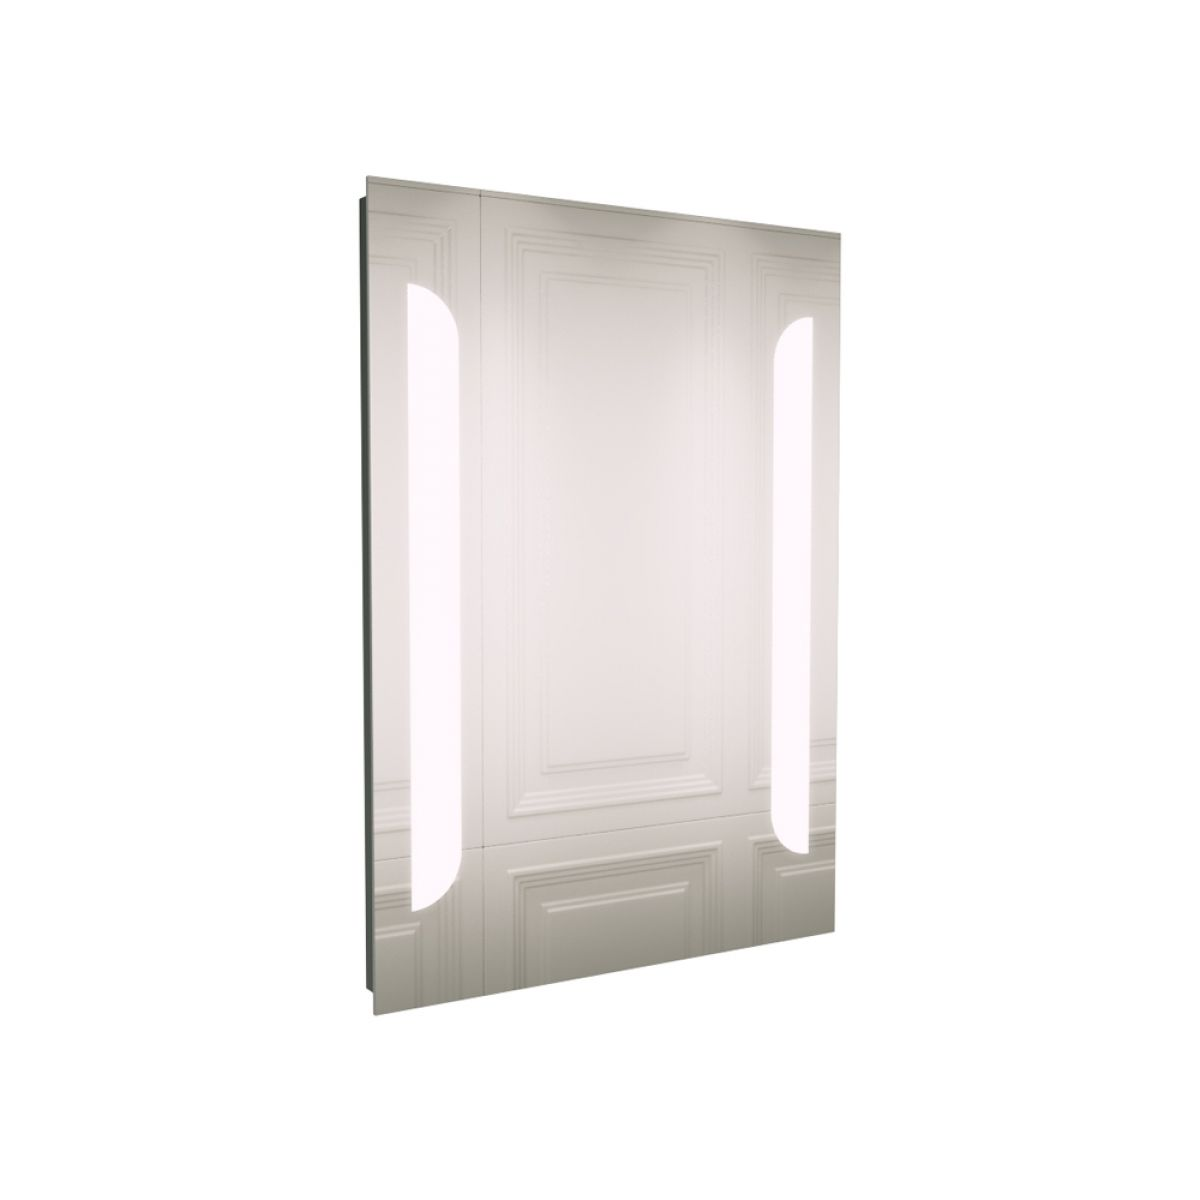 Cassellie Oxygen LED Bathroom Mirror